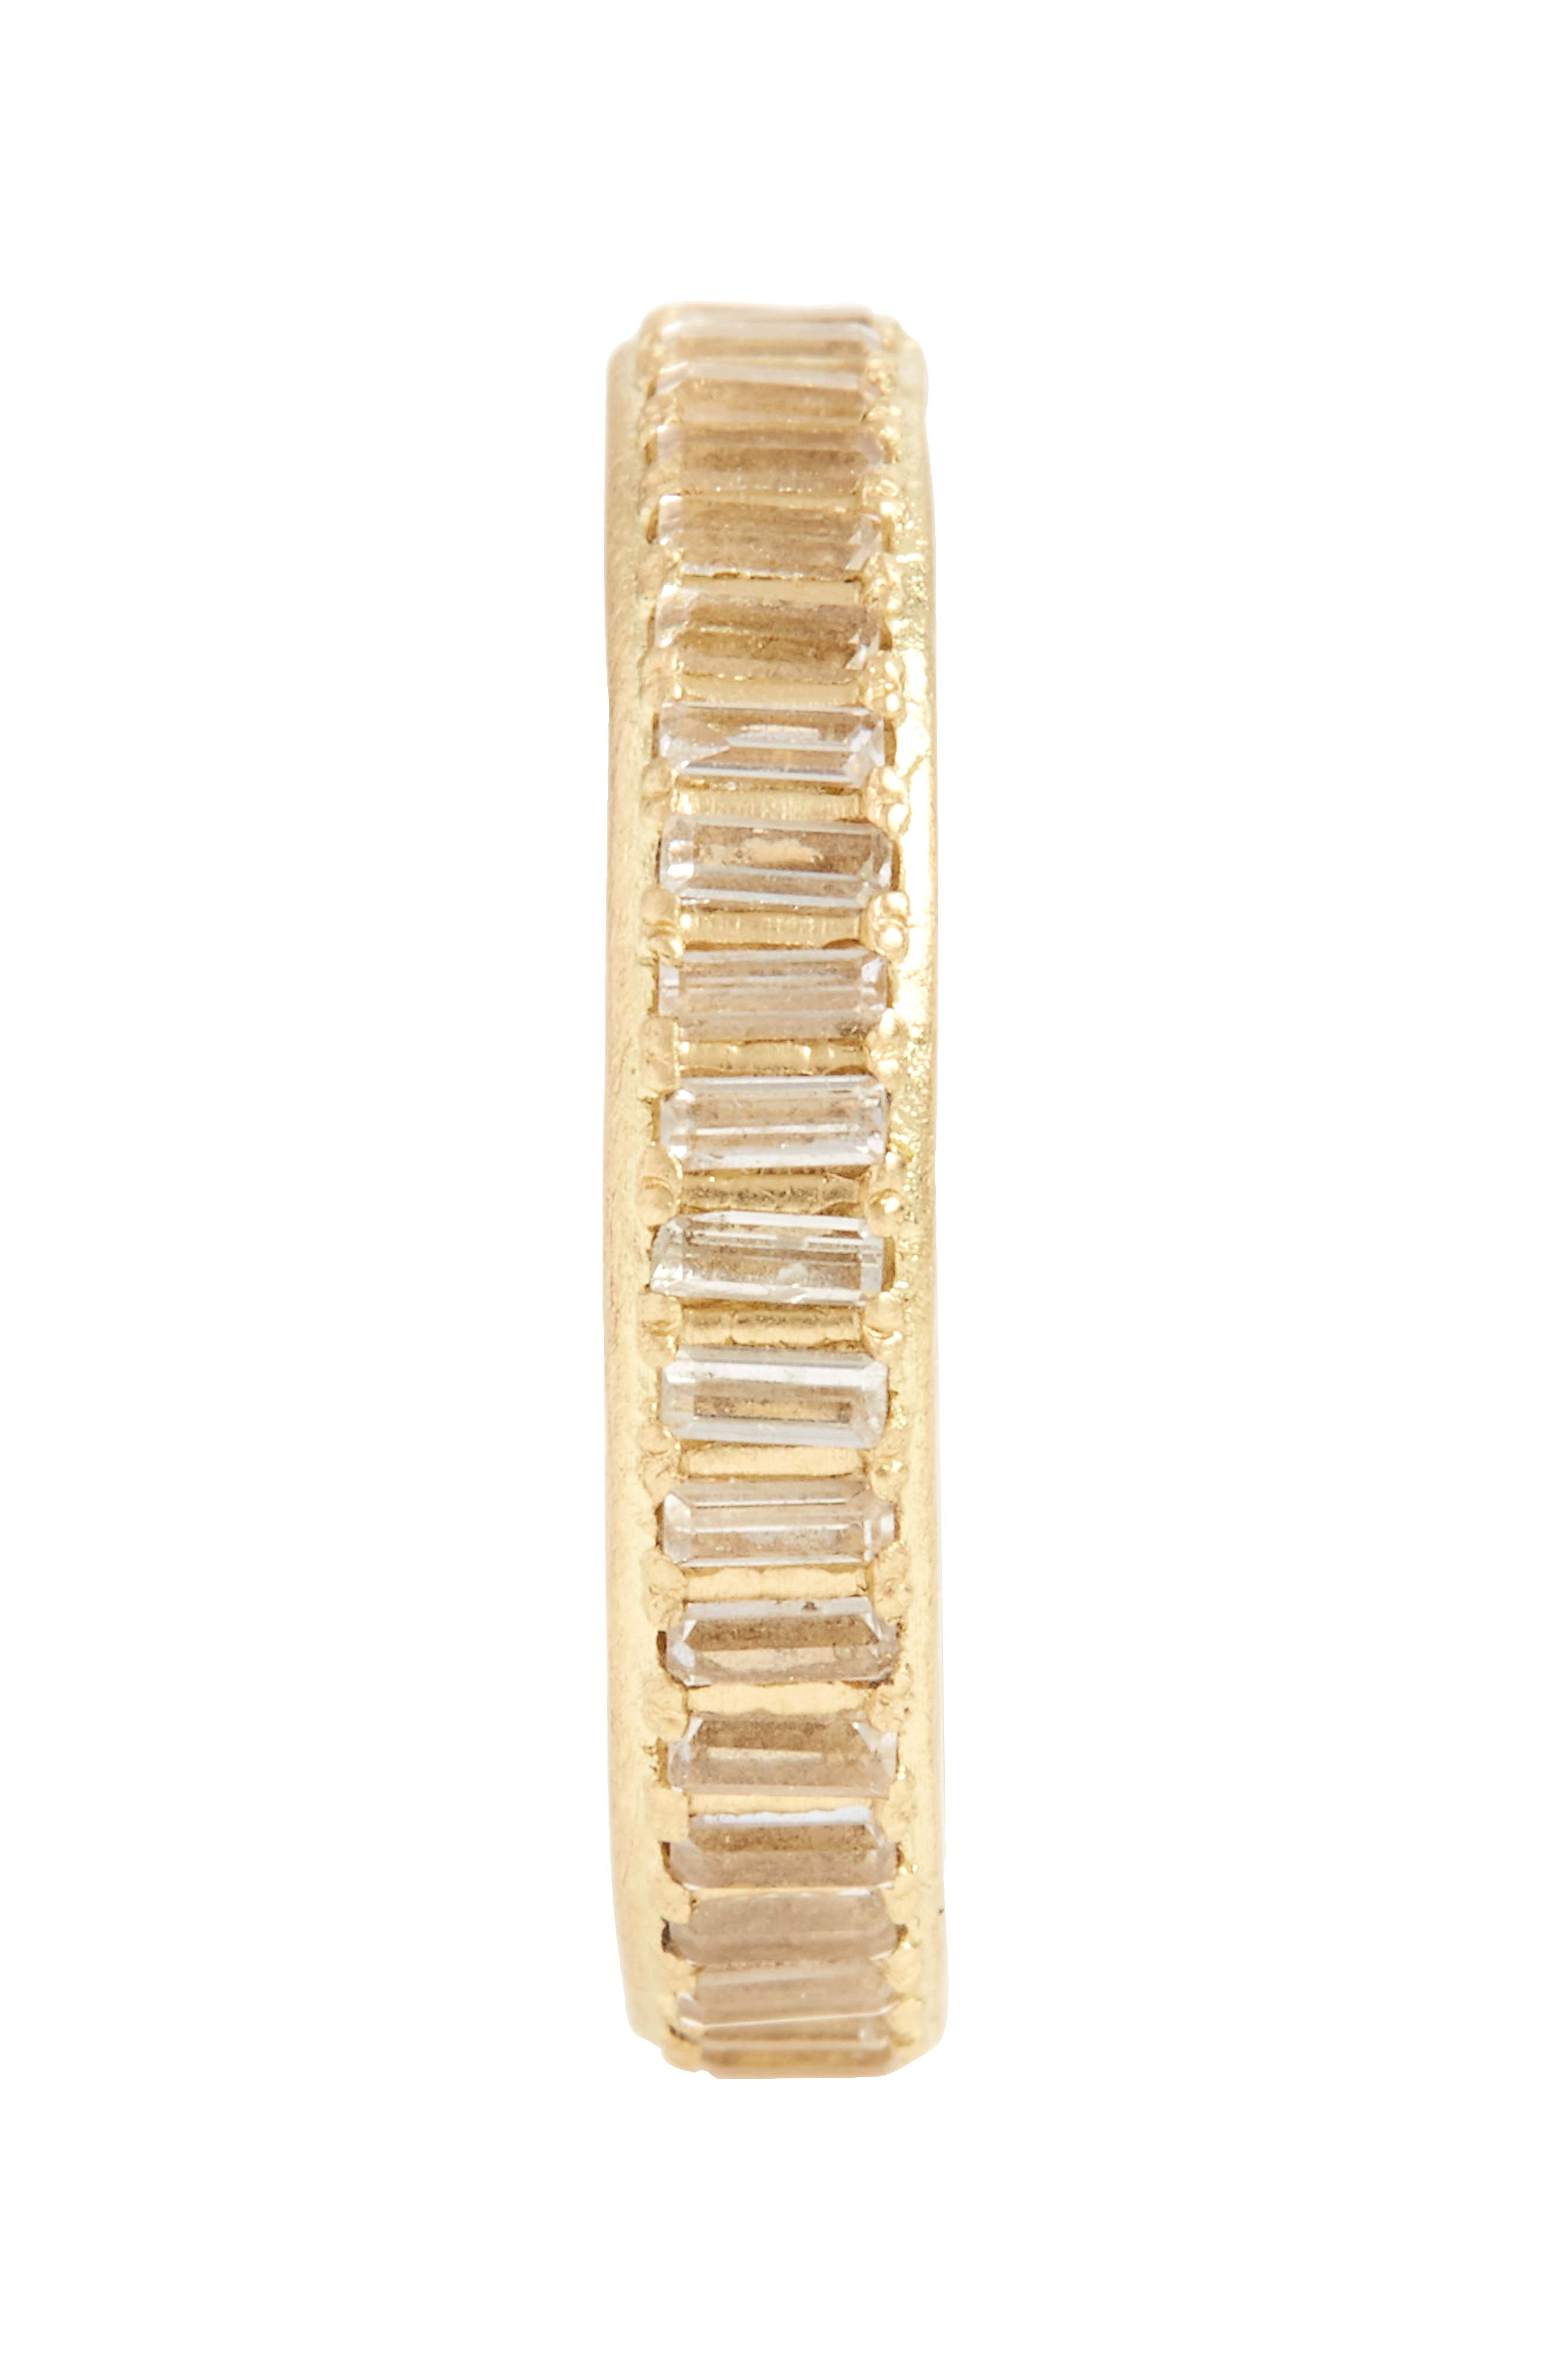 Sueño Sapphire Band Ring,                             Alternate thumbnail 2, color,                             GOLD